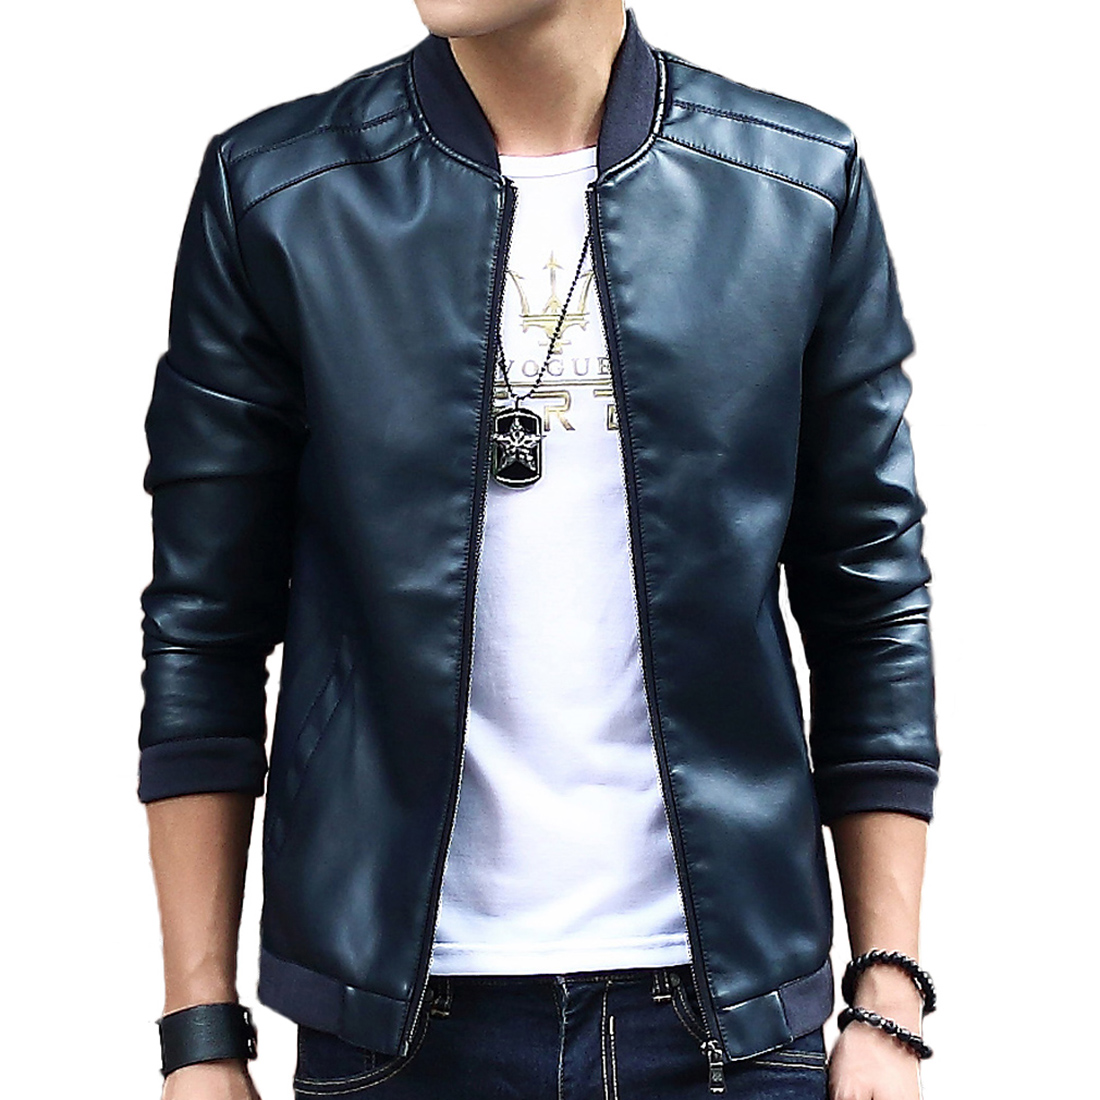 Compare Prices on Lightweight Leather Jacket- Online Shopping/Buy ...